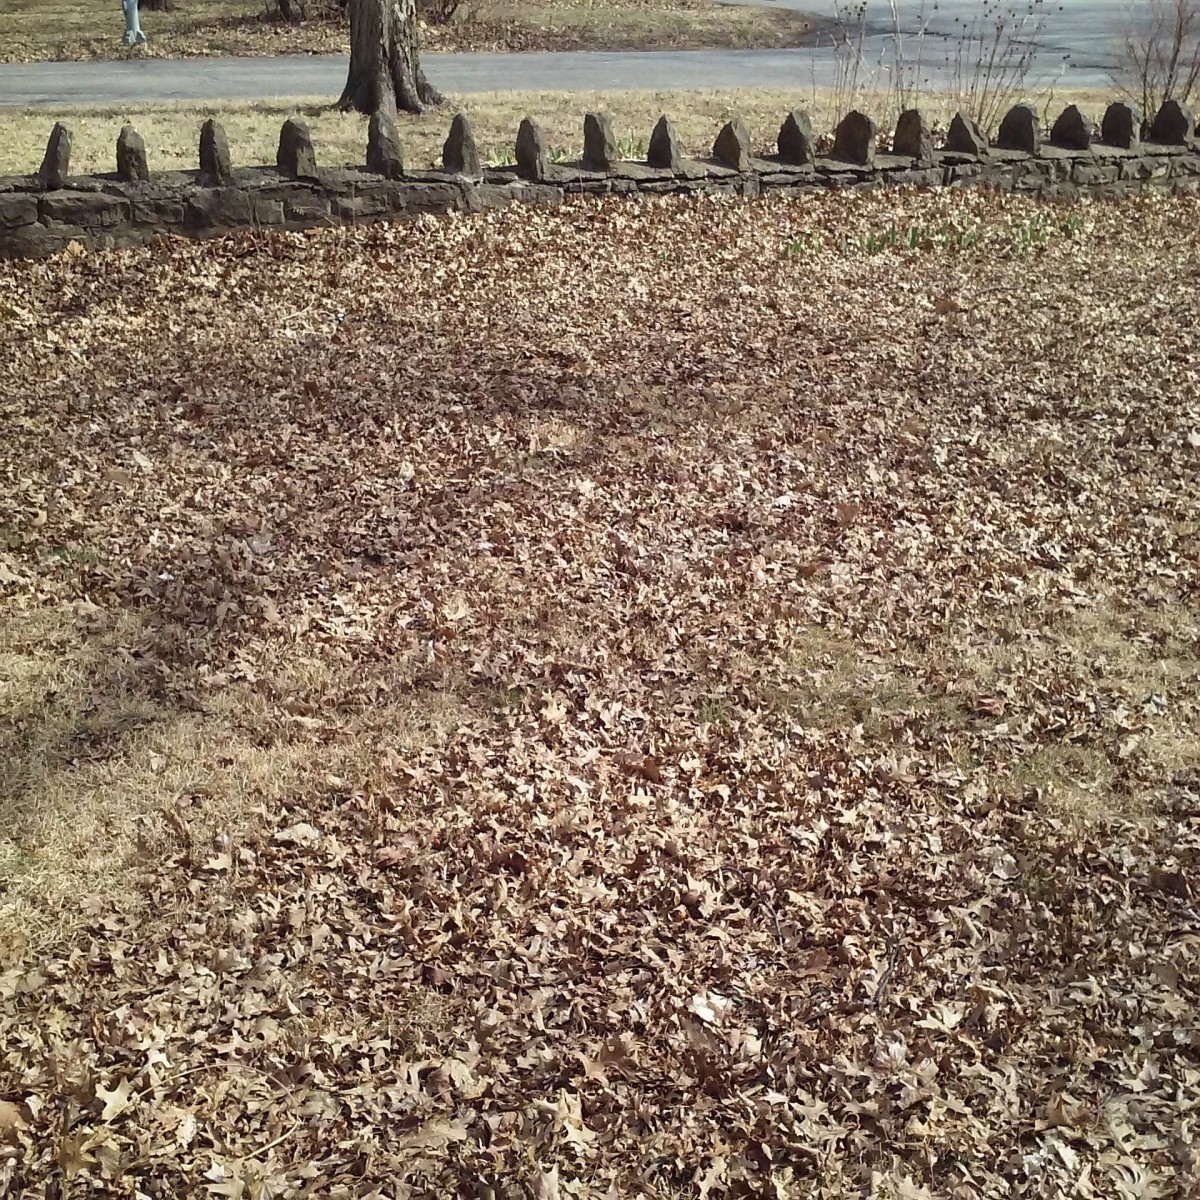 The retaining wall keeps the leaves from being blown away.  Under those leaves are irises.